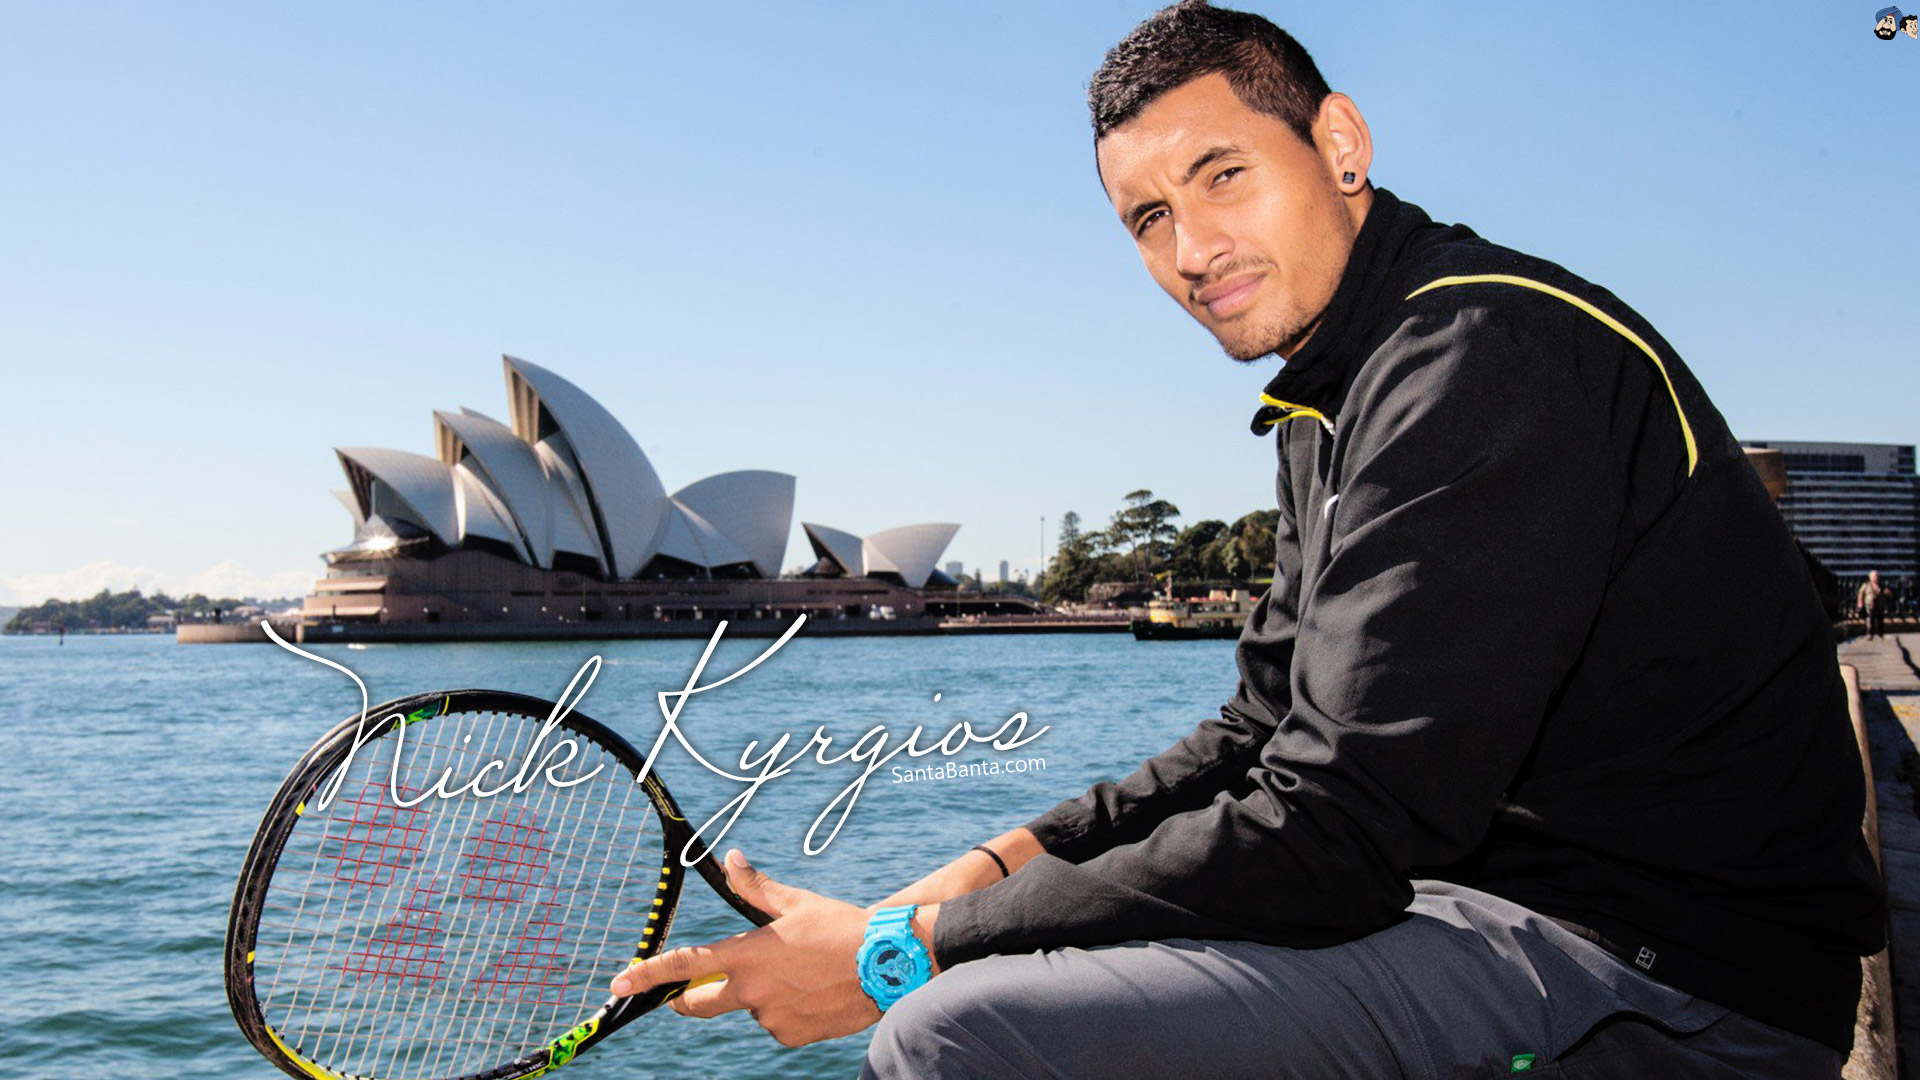 COVID-19 pandemic:Nick Kyrgios withdraws from US Open